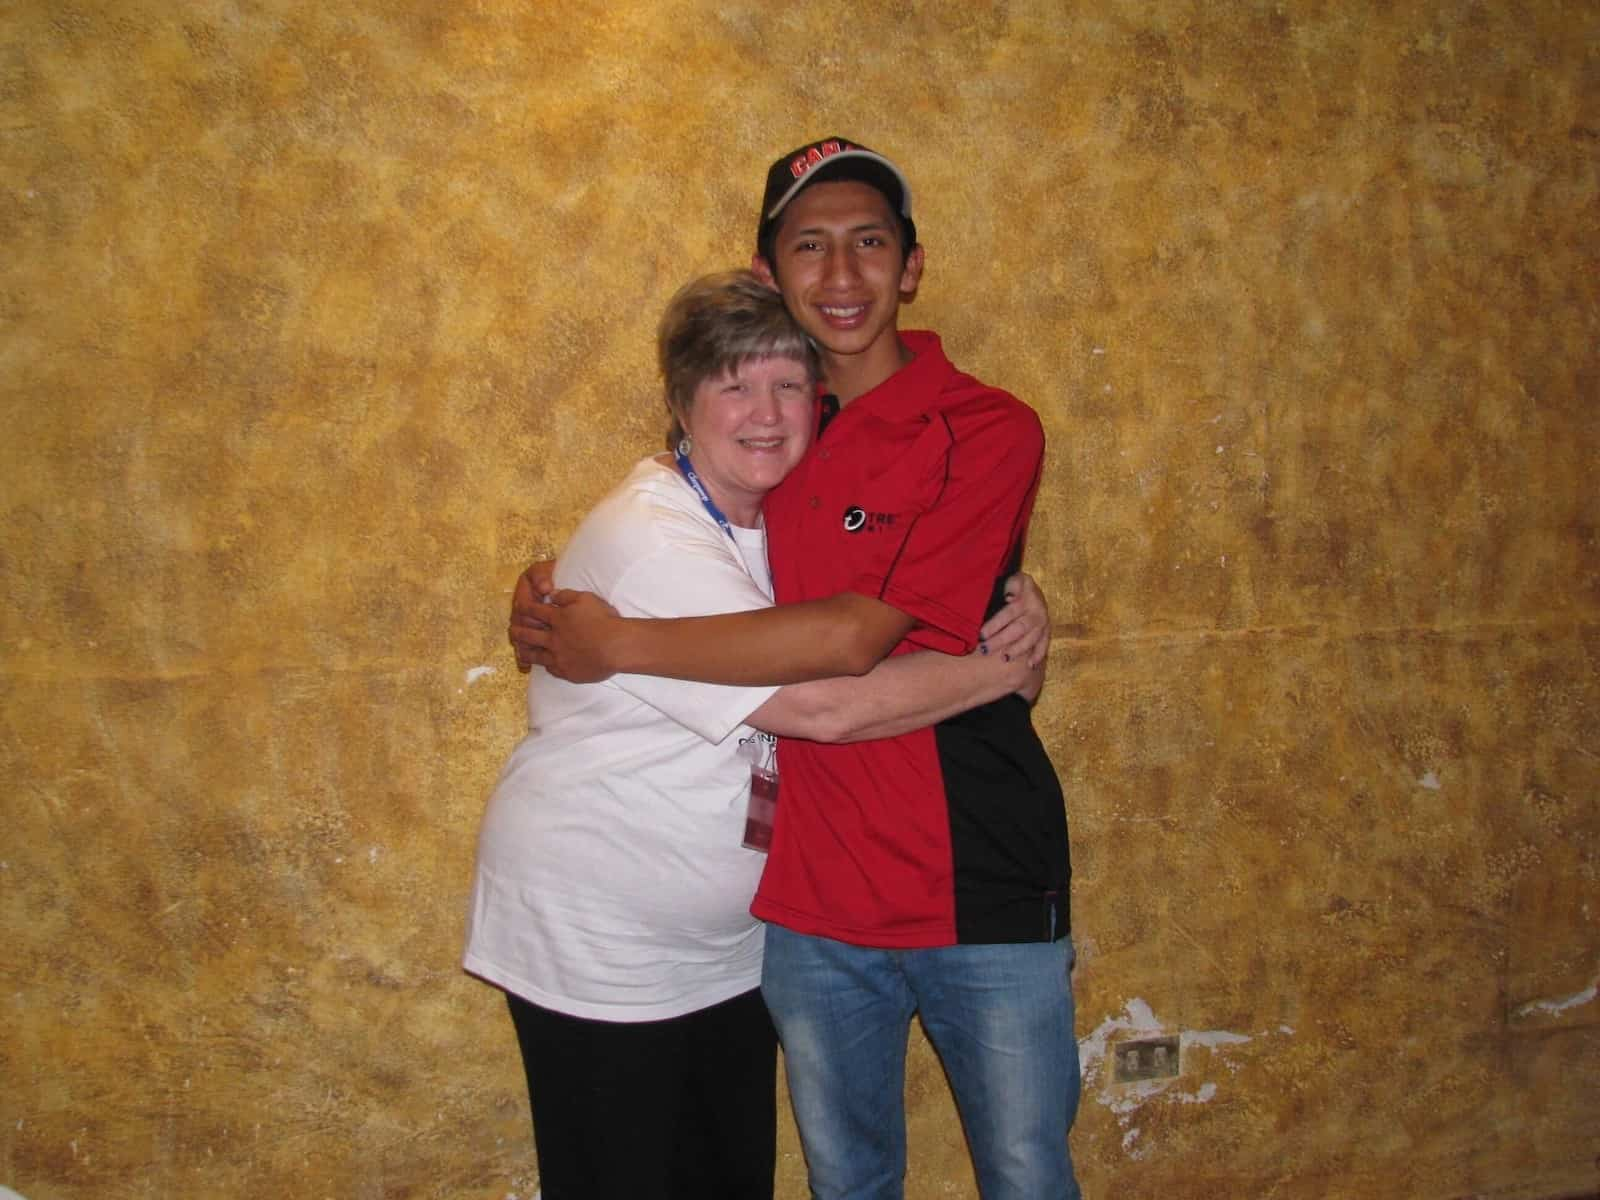 A woman in a white shirt and a young man in a red shirt hug one another tightly.